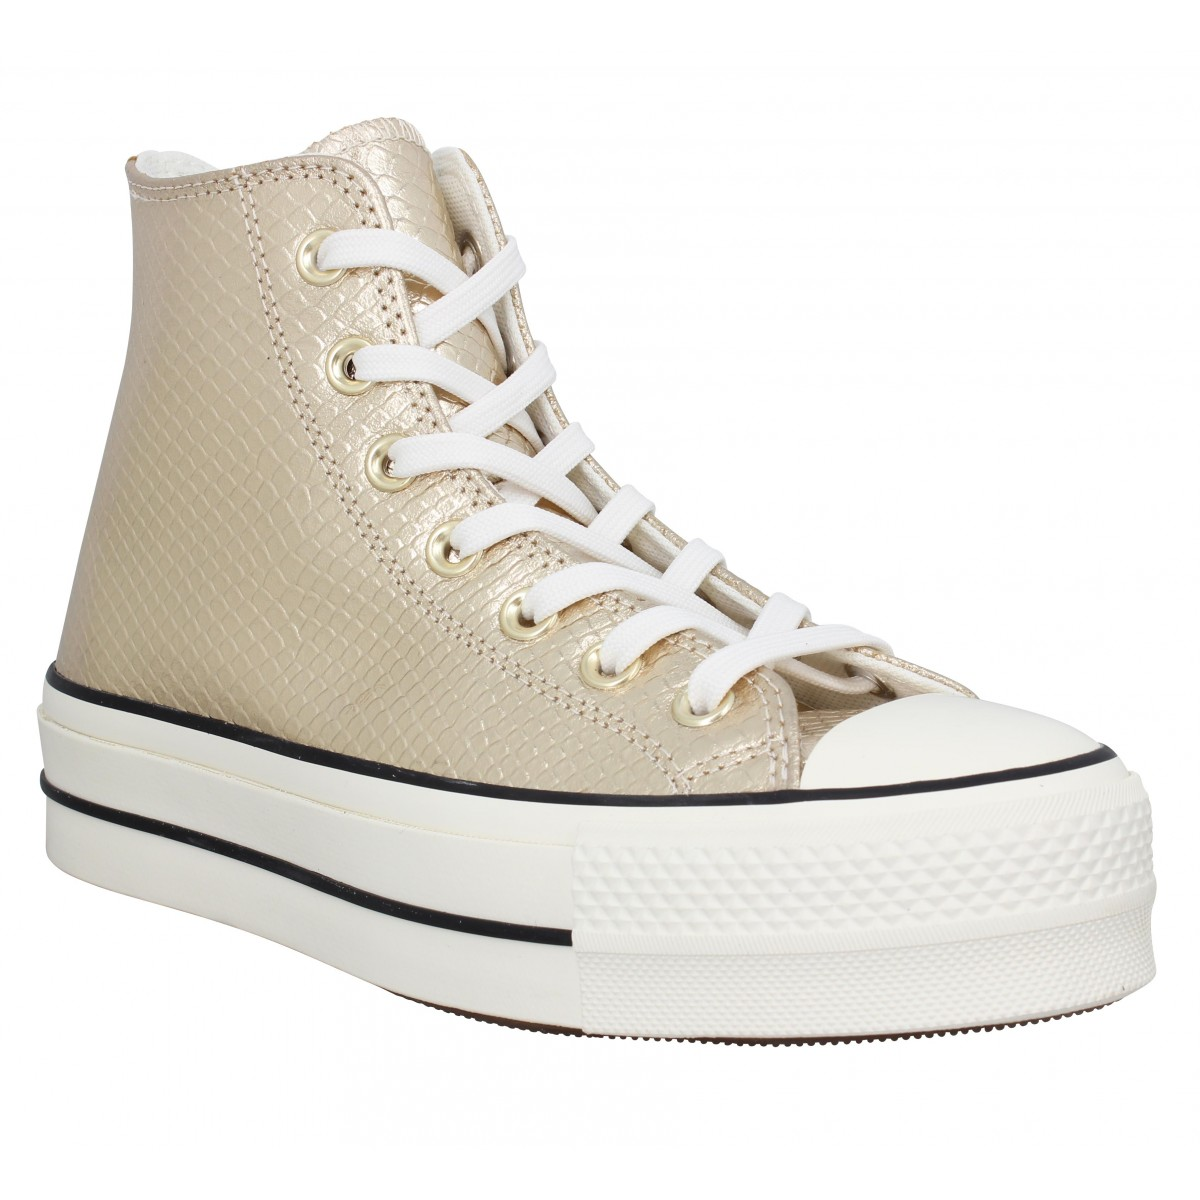 Baskets CONVERSE Chuck Taylor All Star Lift Hi snake Femme Or